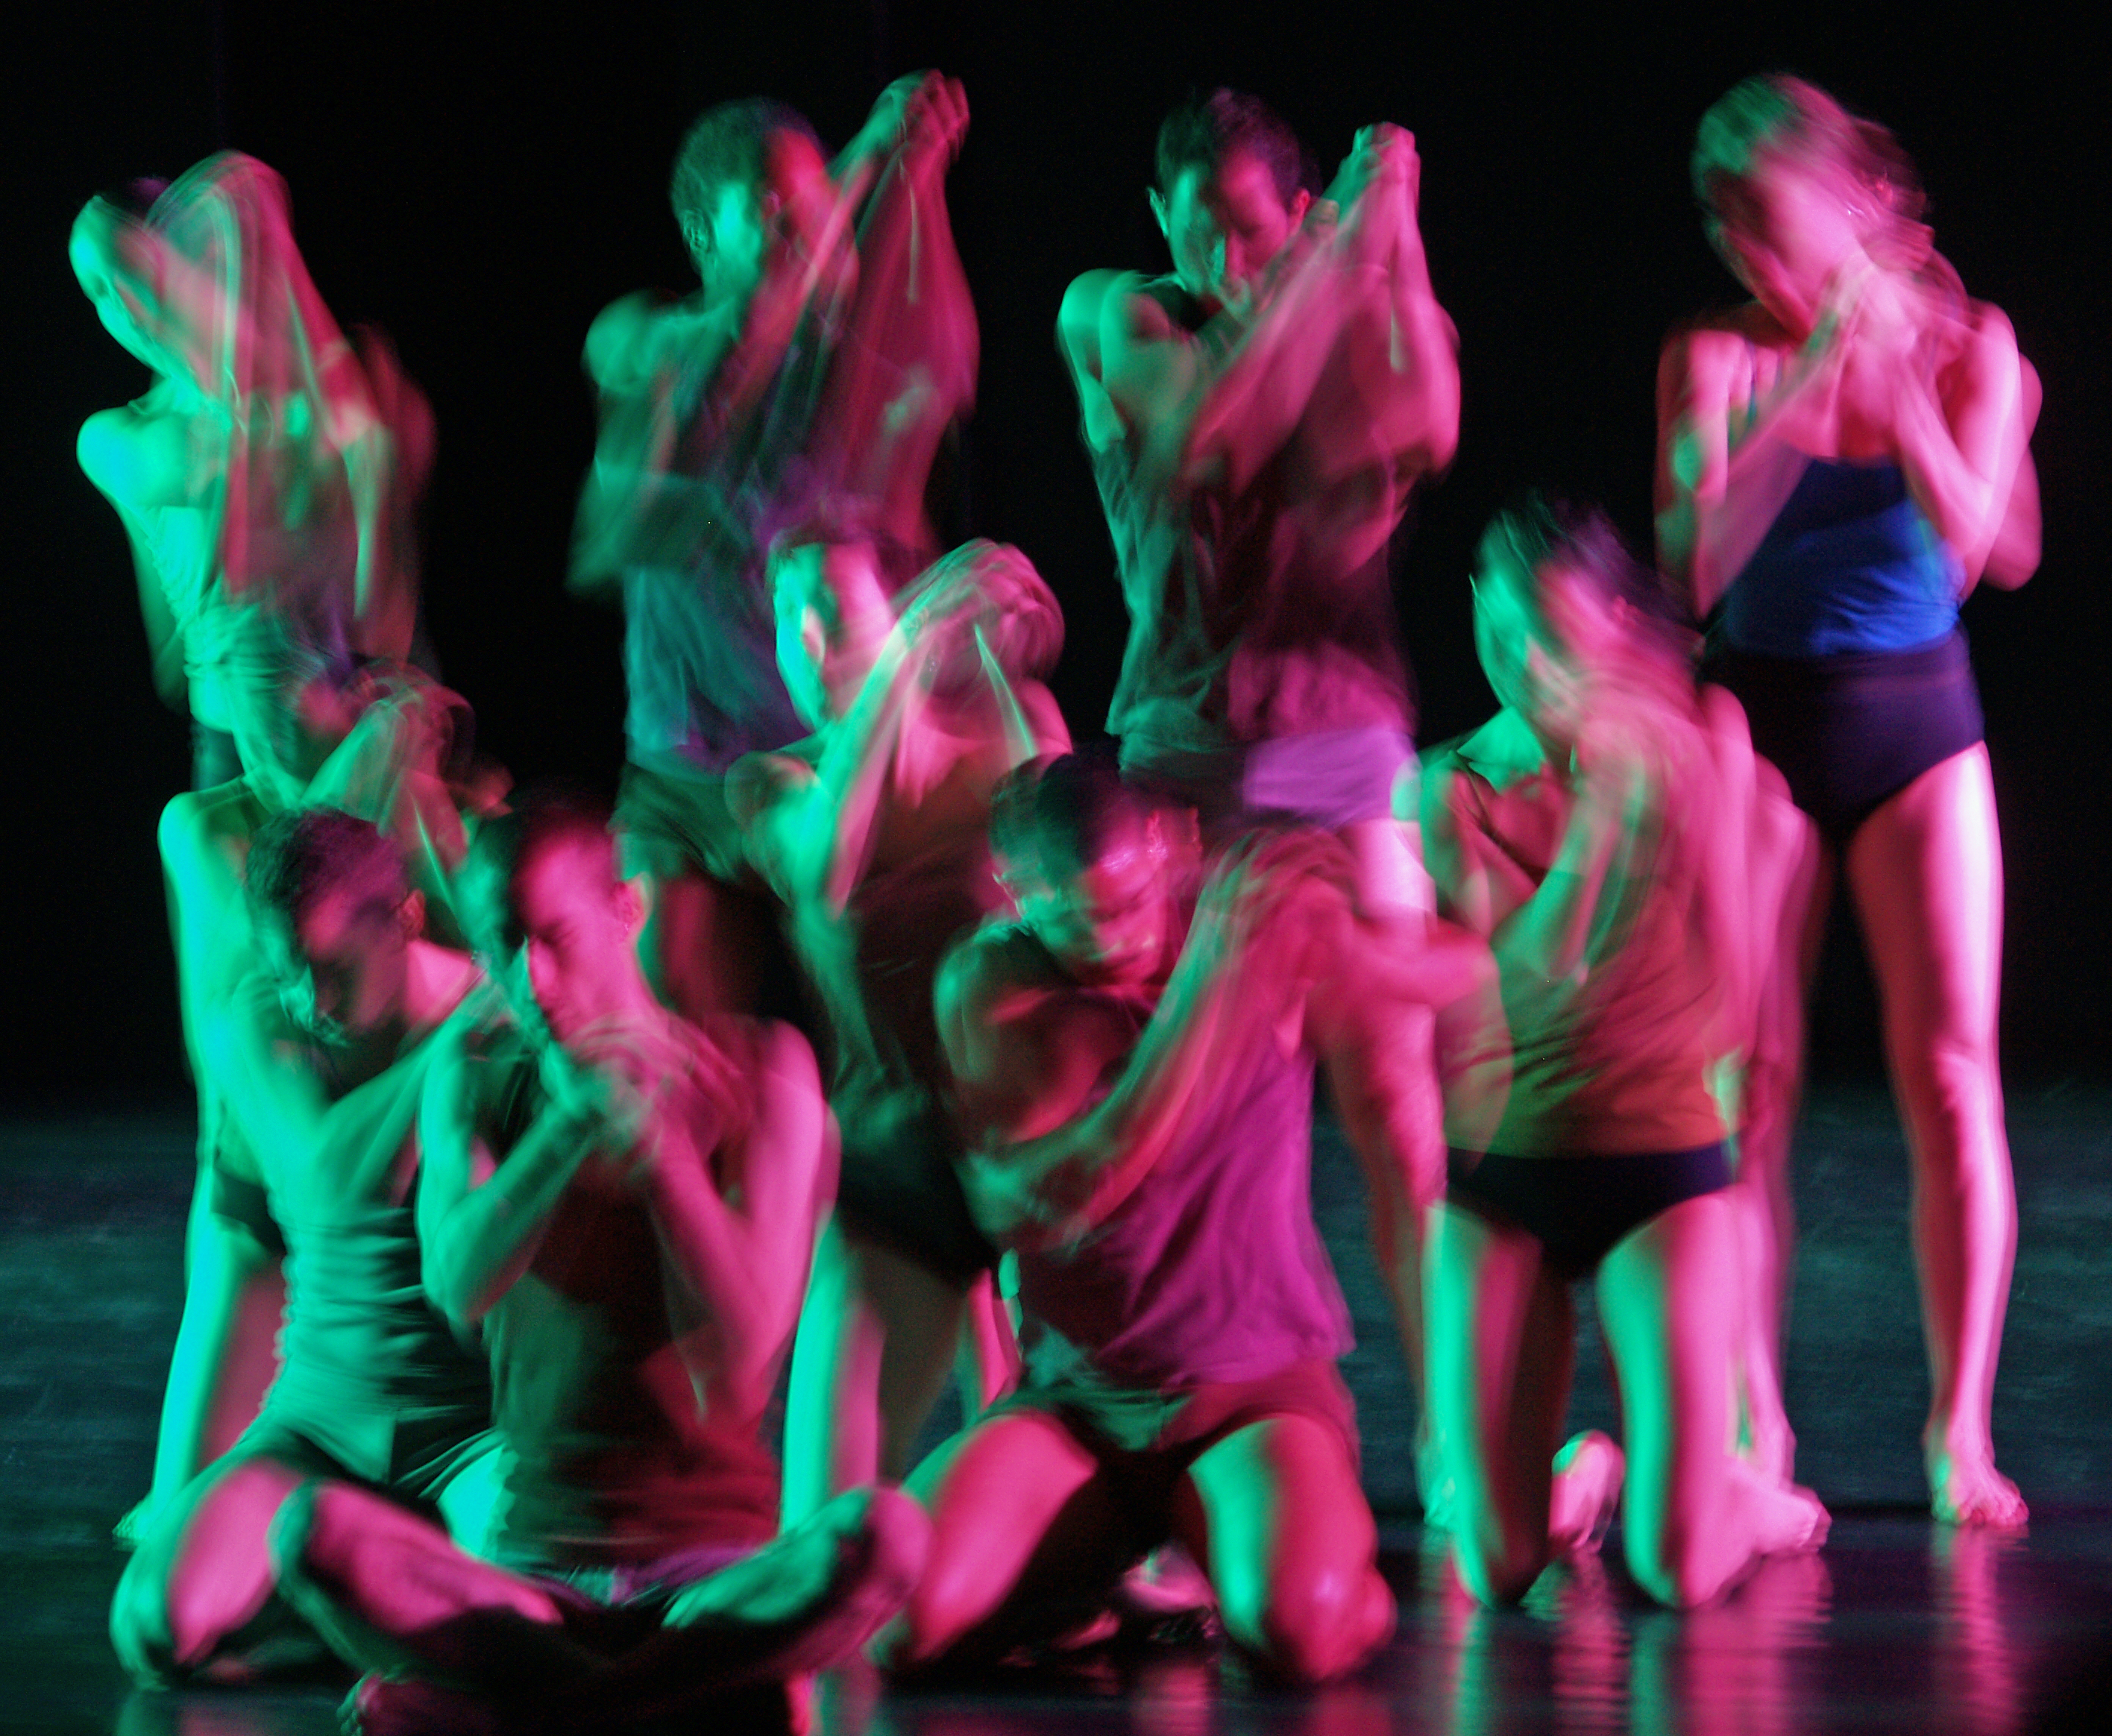 Batsheva Dance pany[edit]